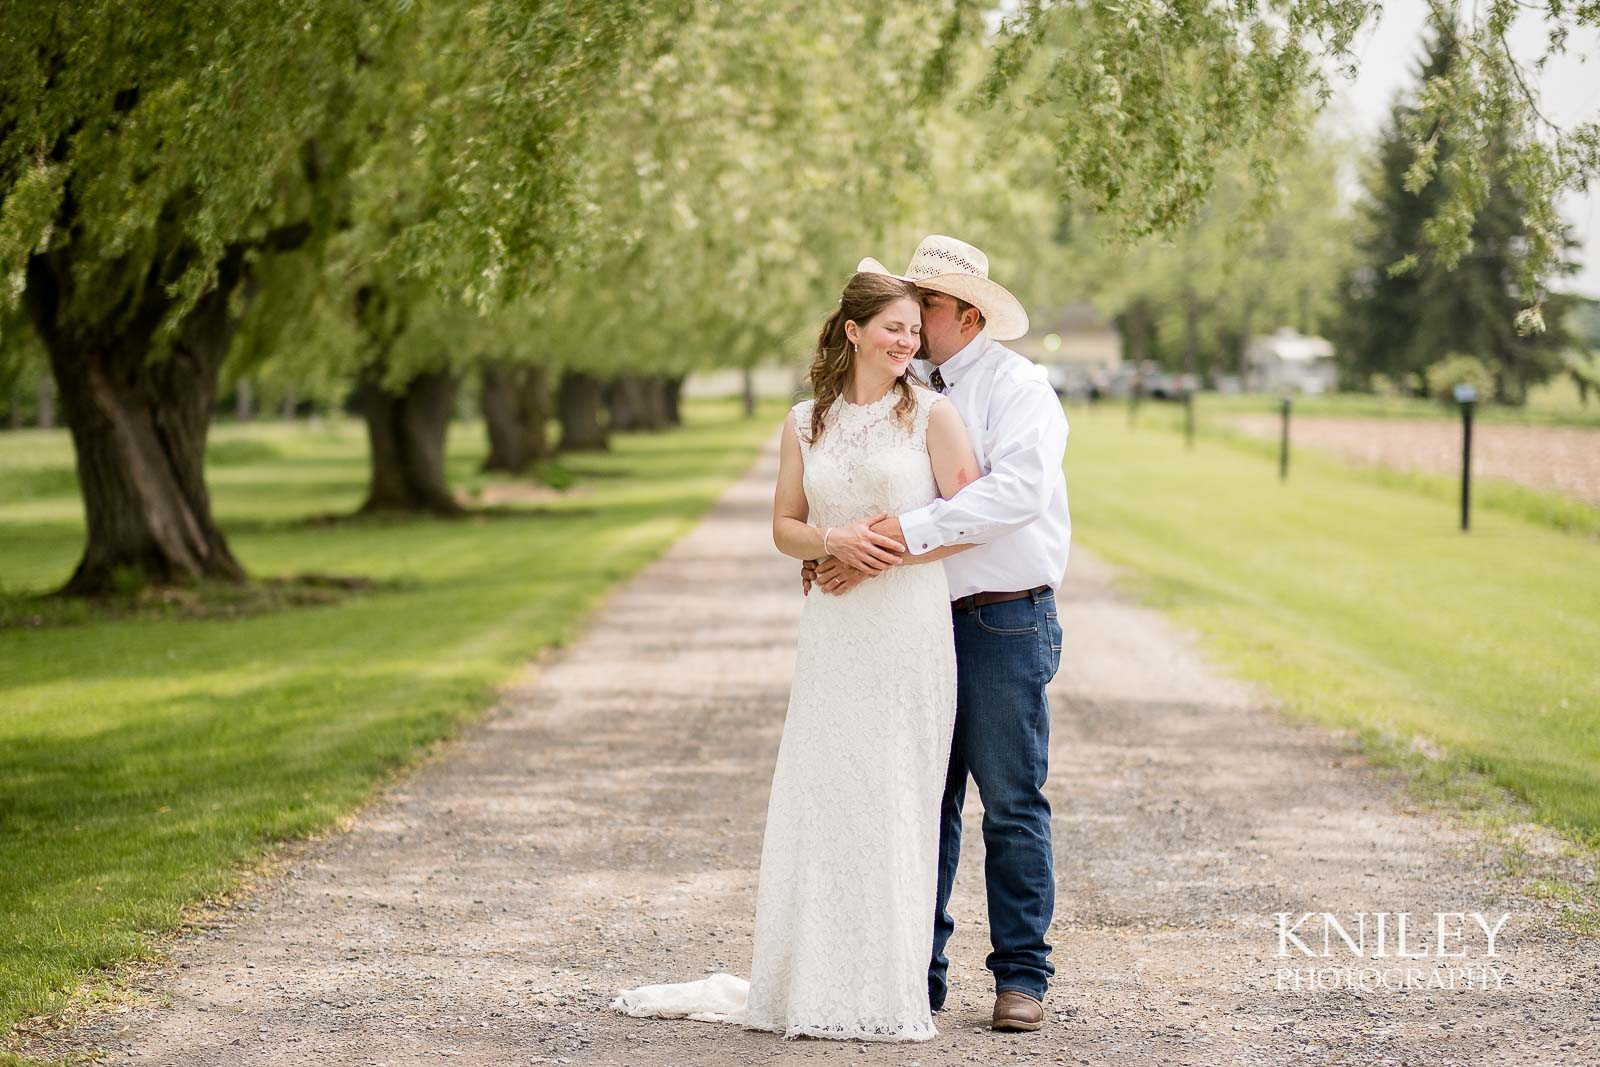 20-Western-New-York-farm-wedding-Kniley-Photography.jpg